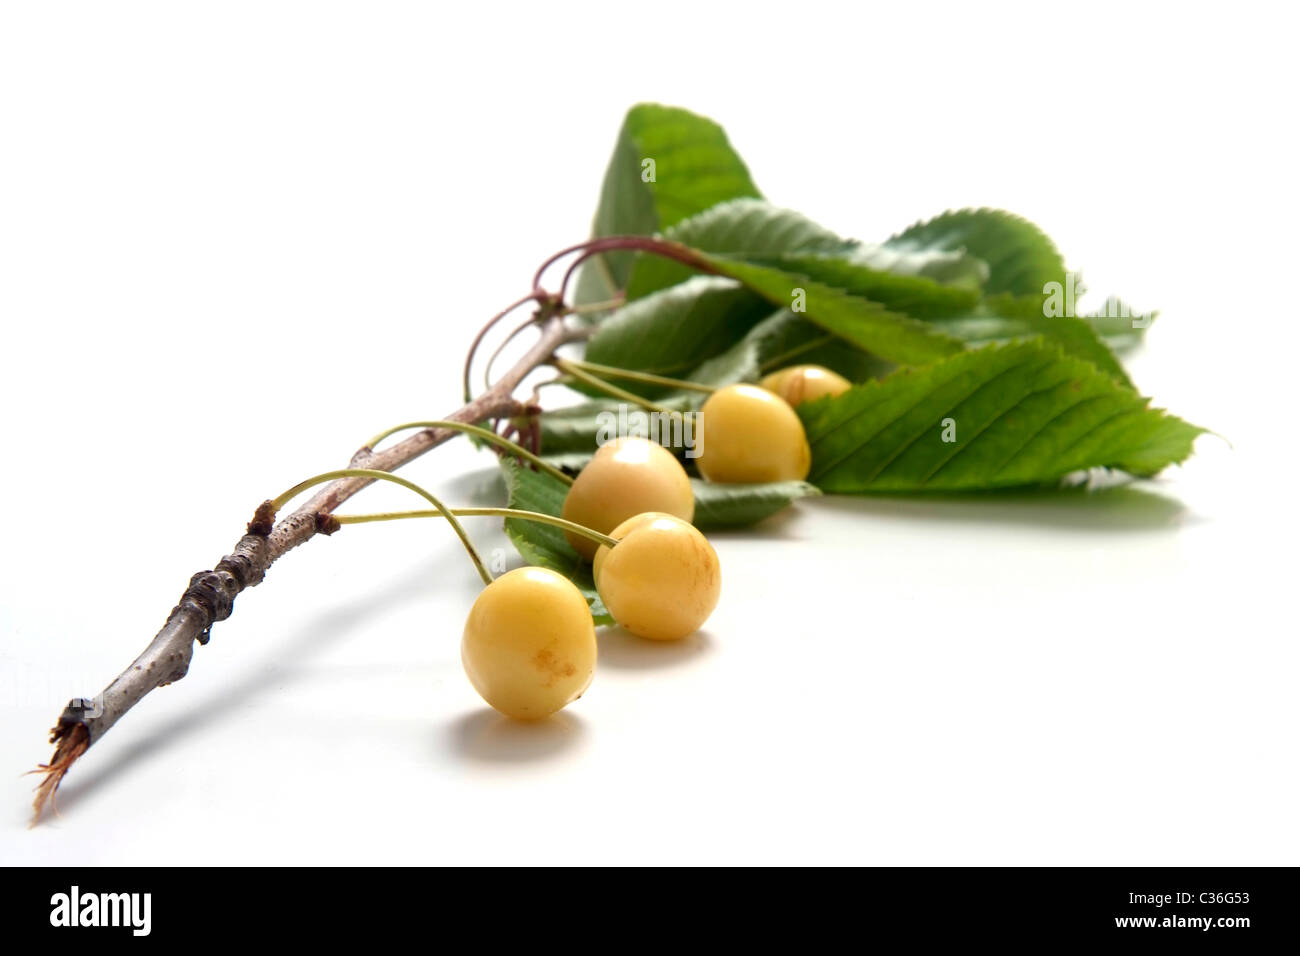 Cherry variety Schwefelkirsche  with twig and leaves - Stock Image